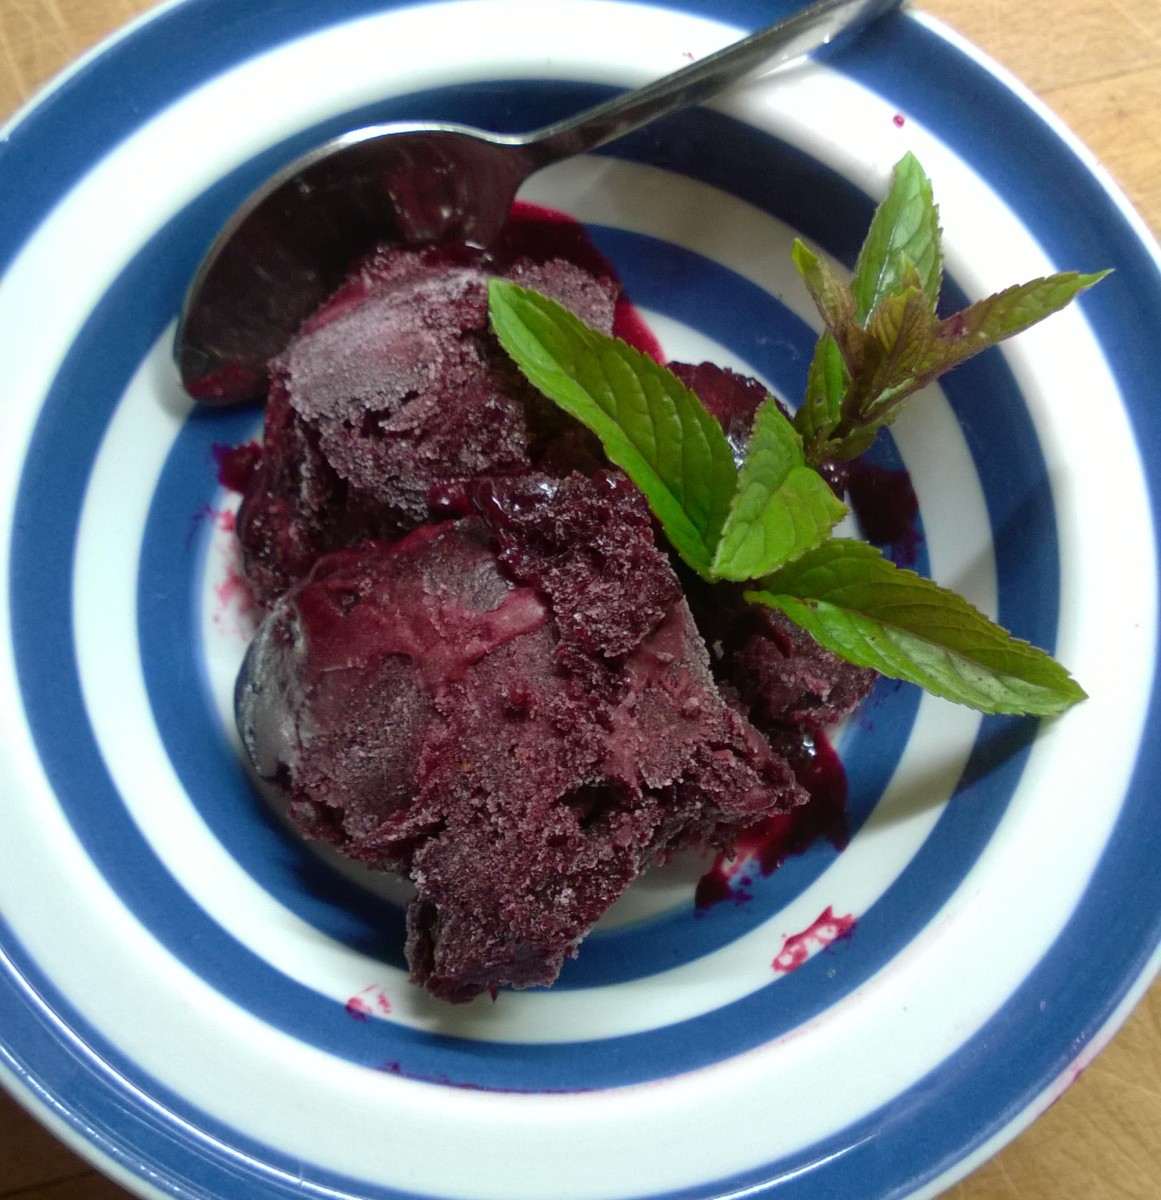 Blackcurrant sorbet with peppermint